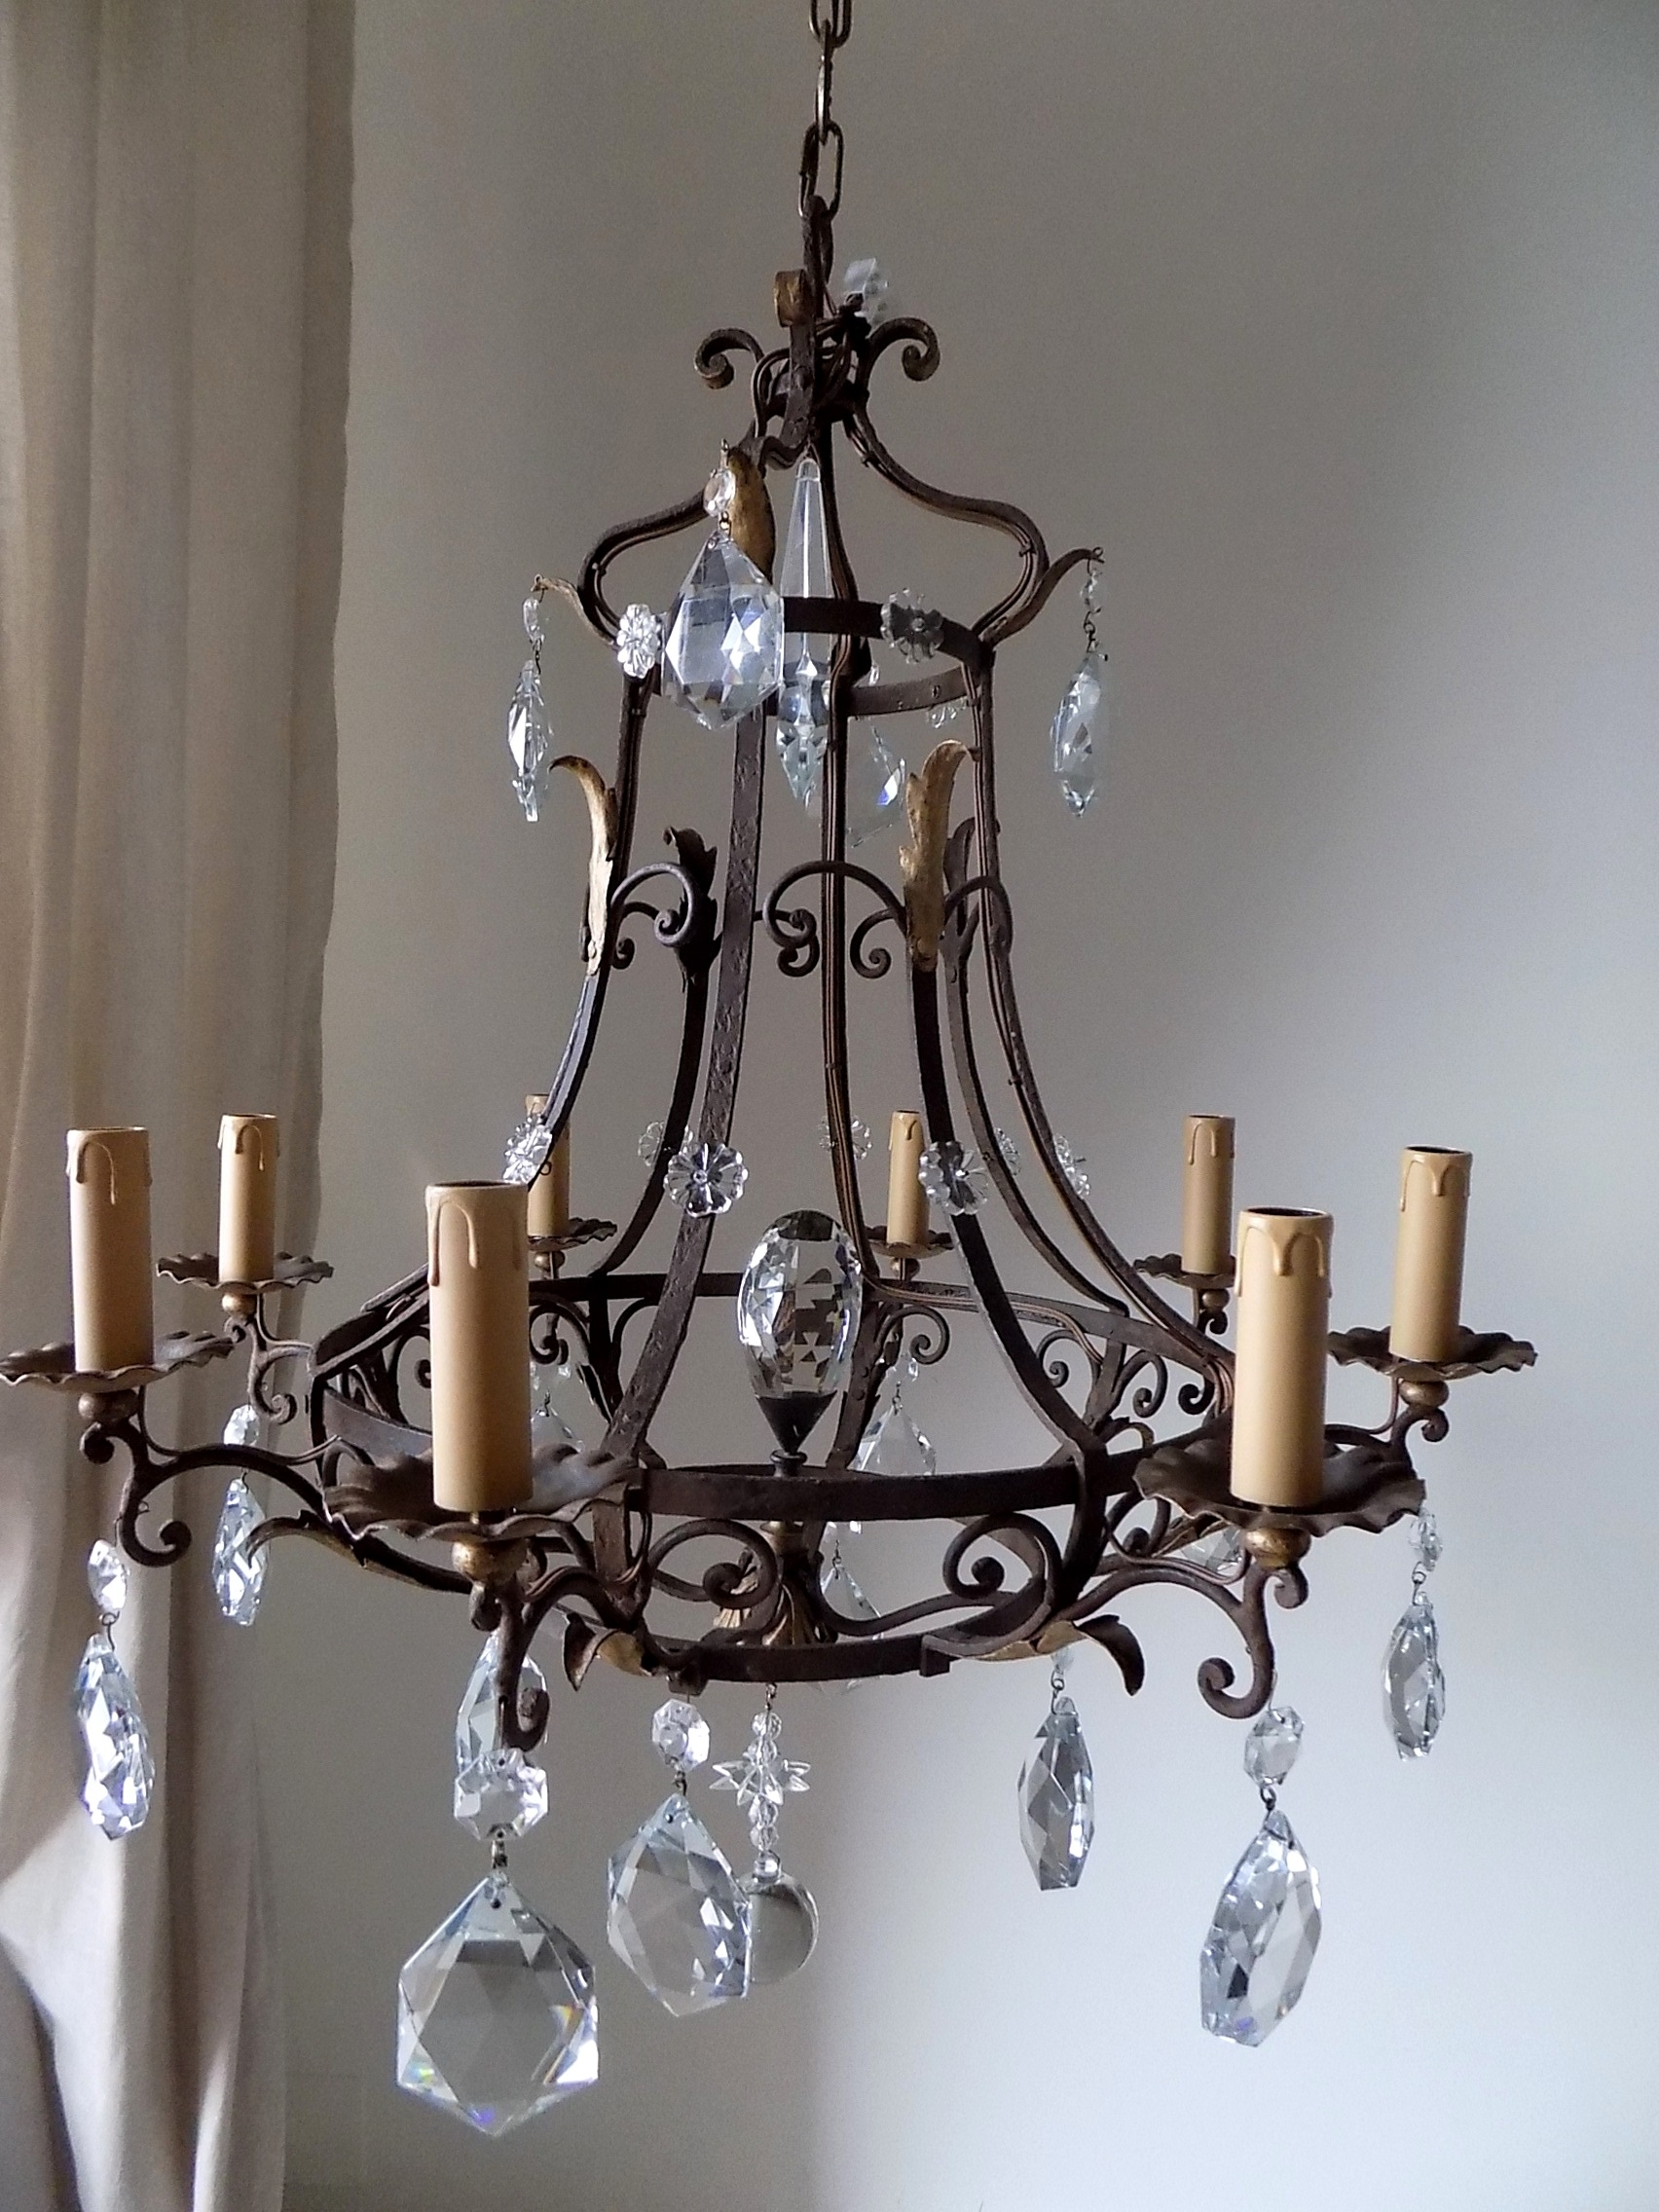 Antique French Chandeliers Throughout Most Current Antique French Iron Chandeliers – Dayri (View 14 of 15)